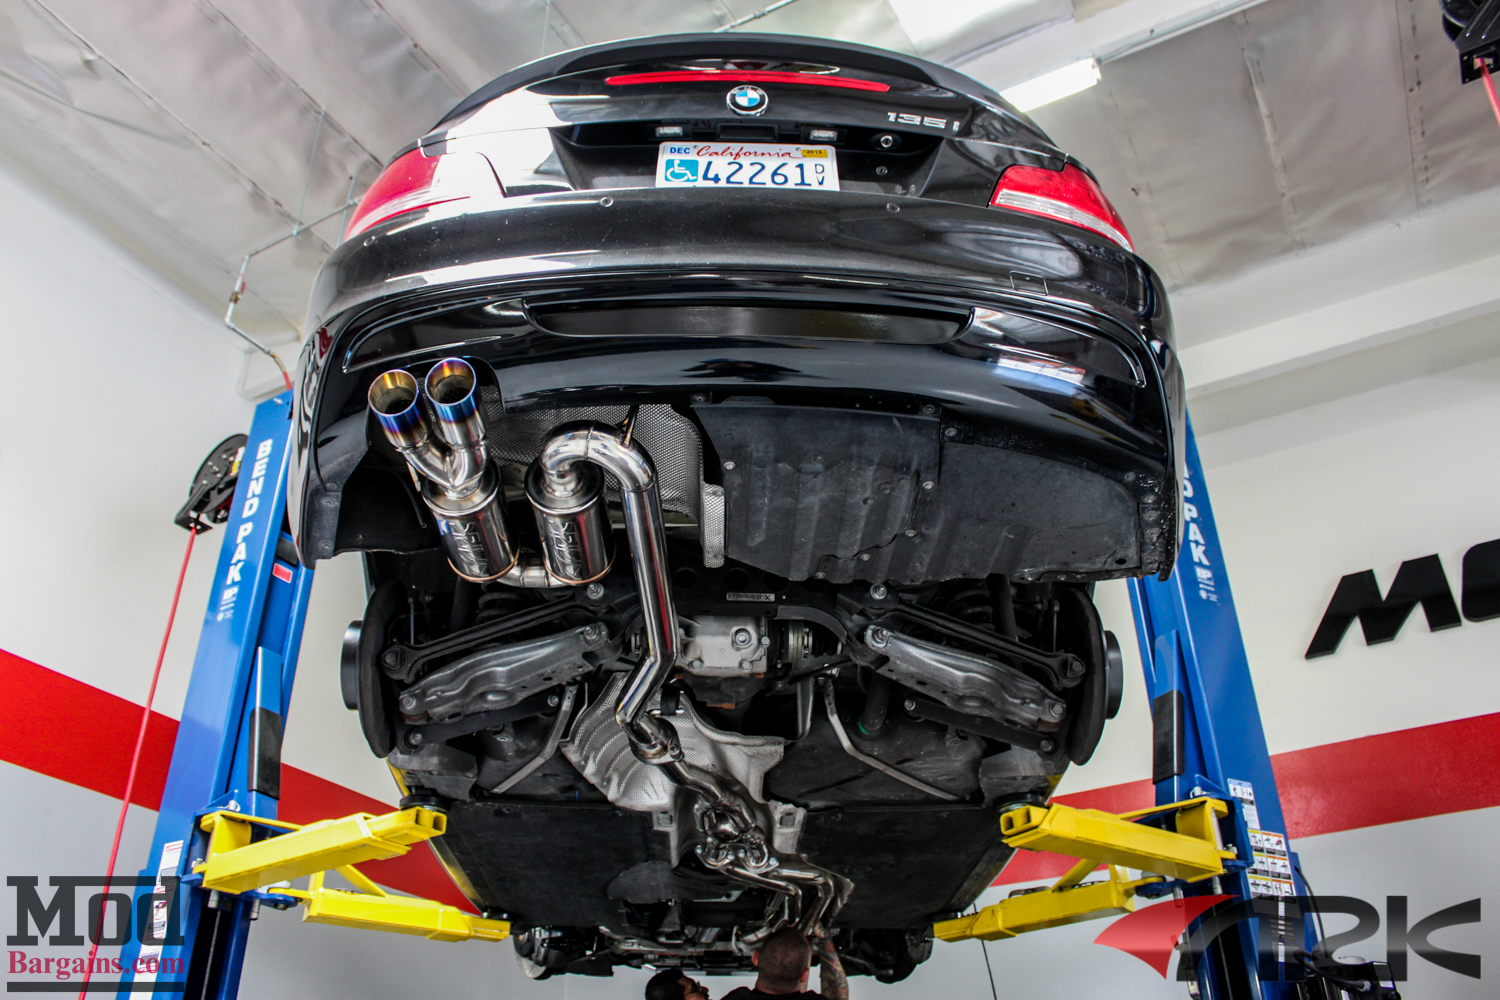 Bmw Cat Back Exhaust Systems Cat-back Exhaust System